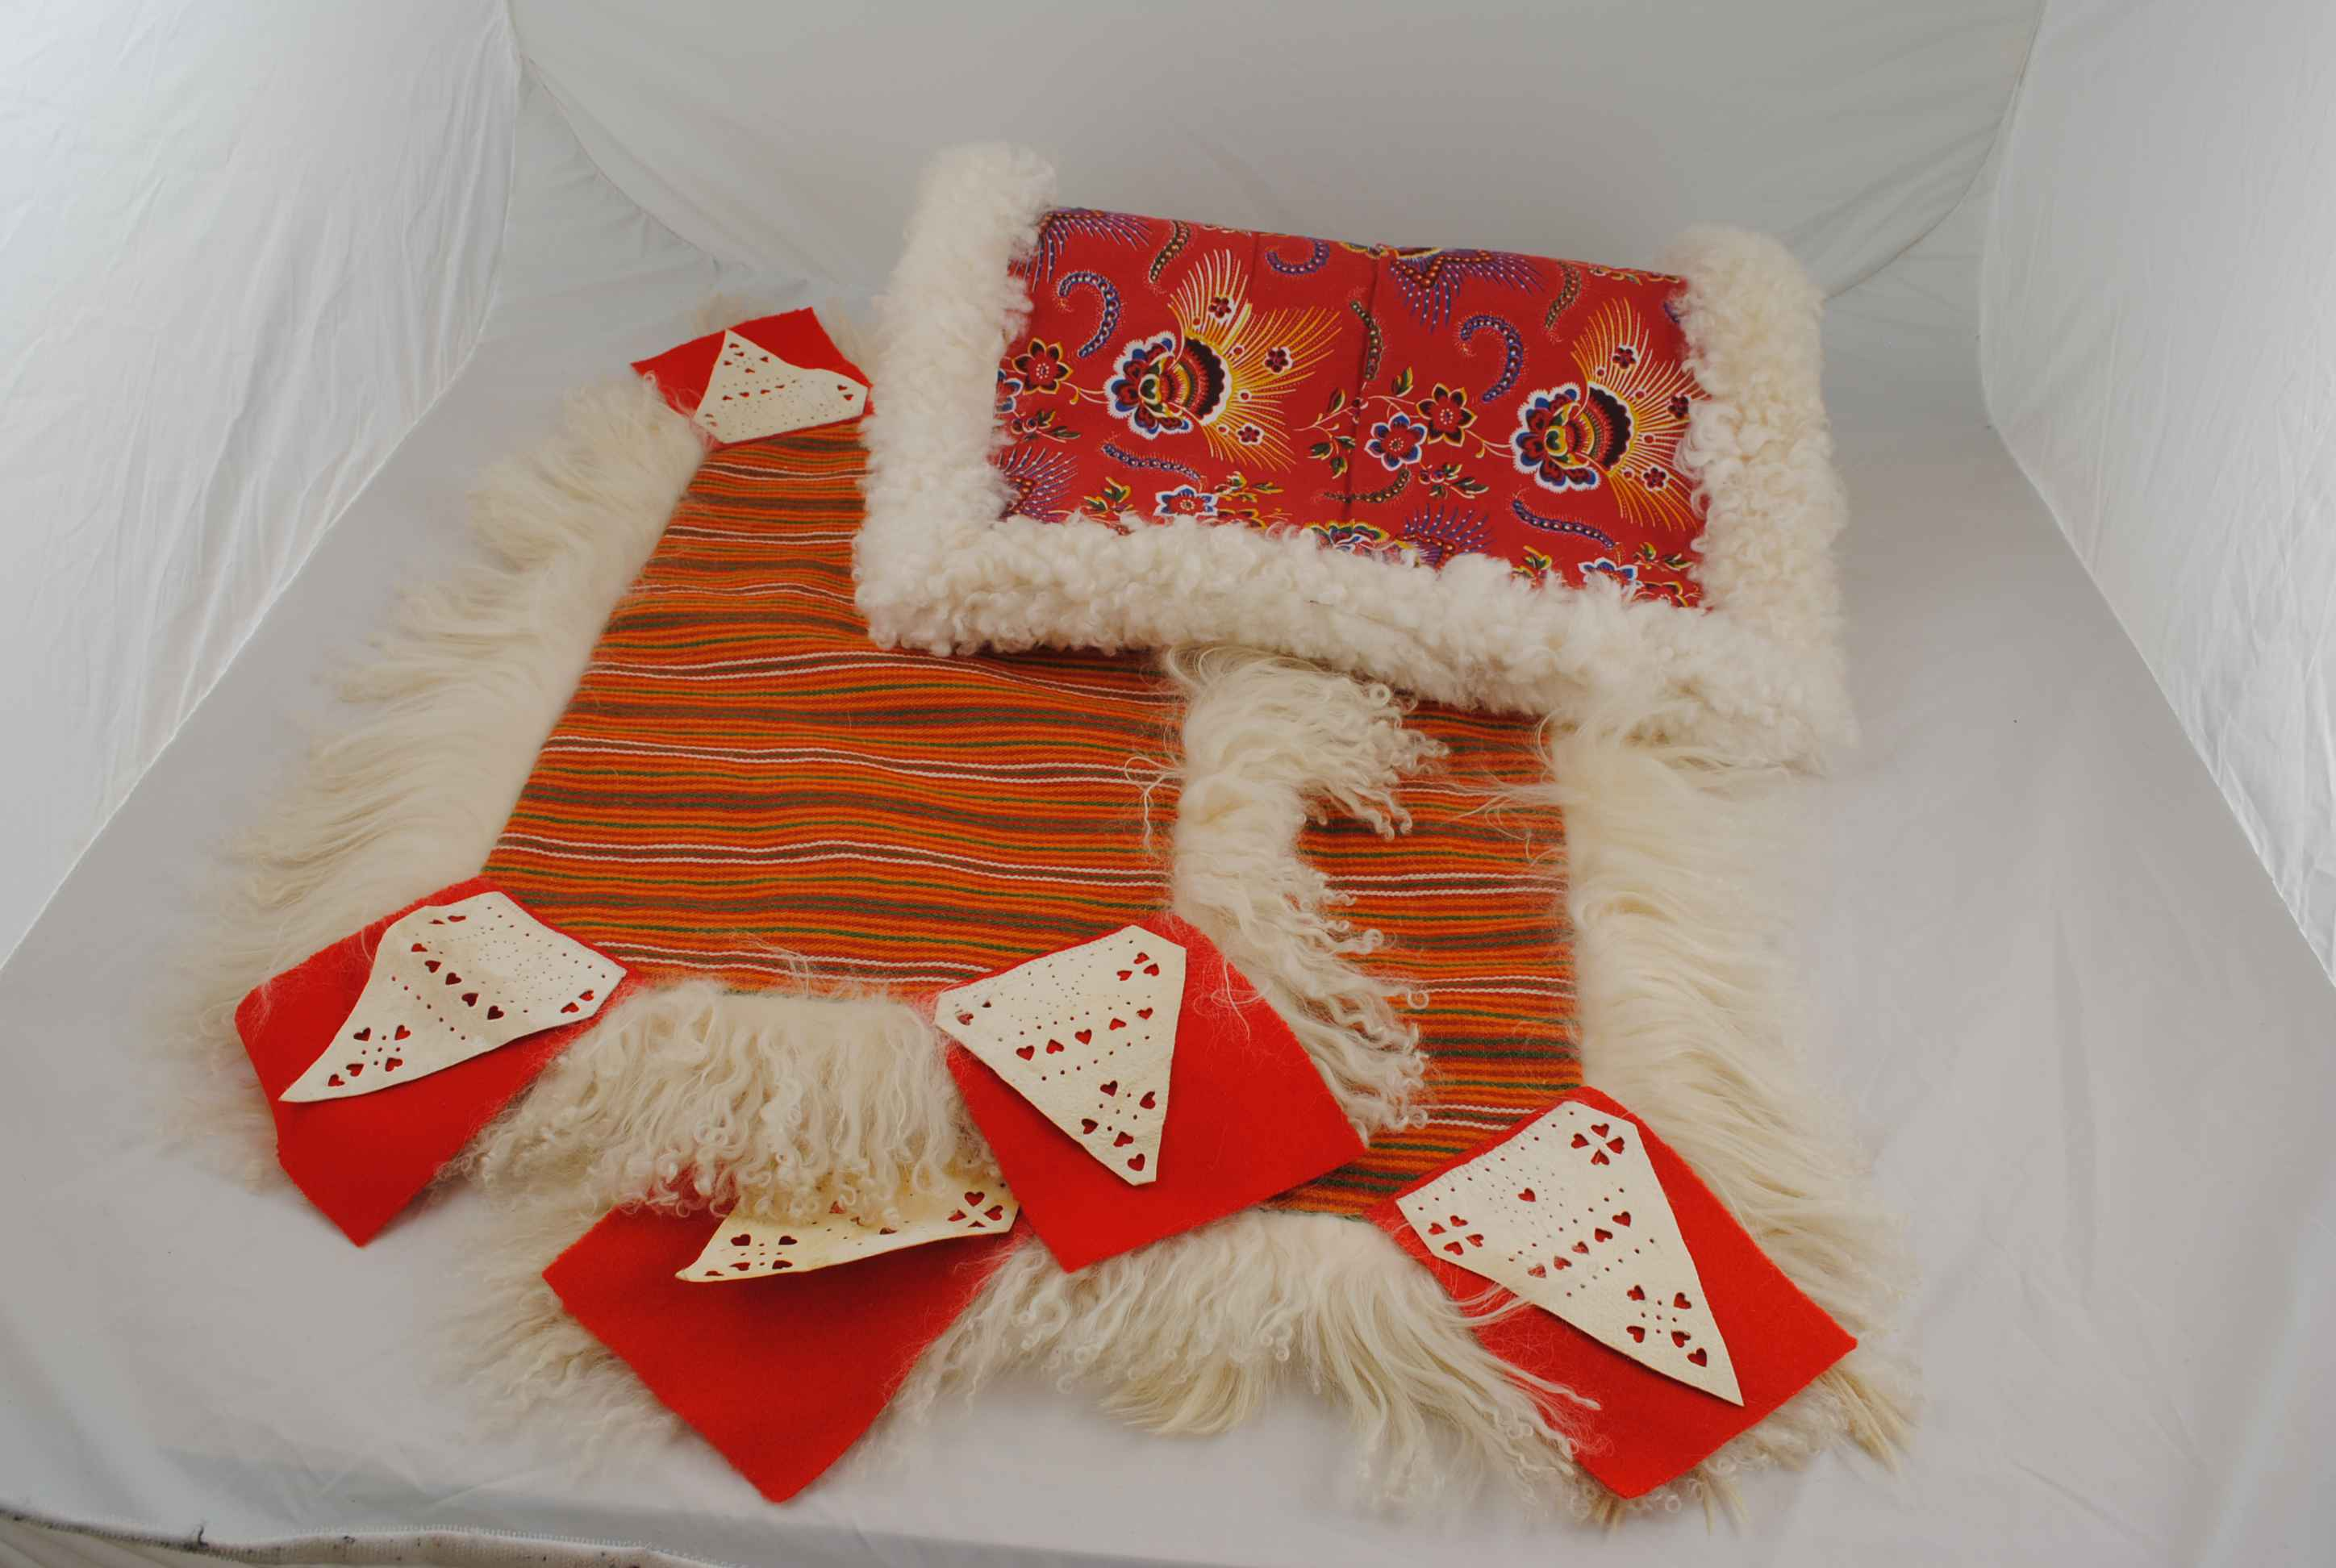 """Handfäll"", part of the folk dress from Mora, in Dalarna. Made by Kristina Karlsson, Mora. Photo: Dalarnas Museum."